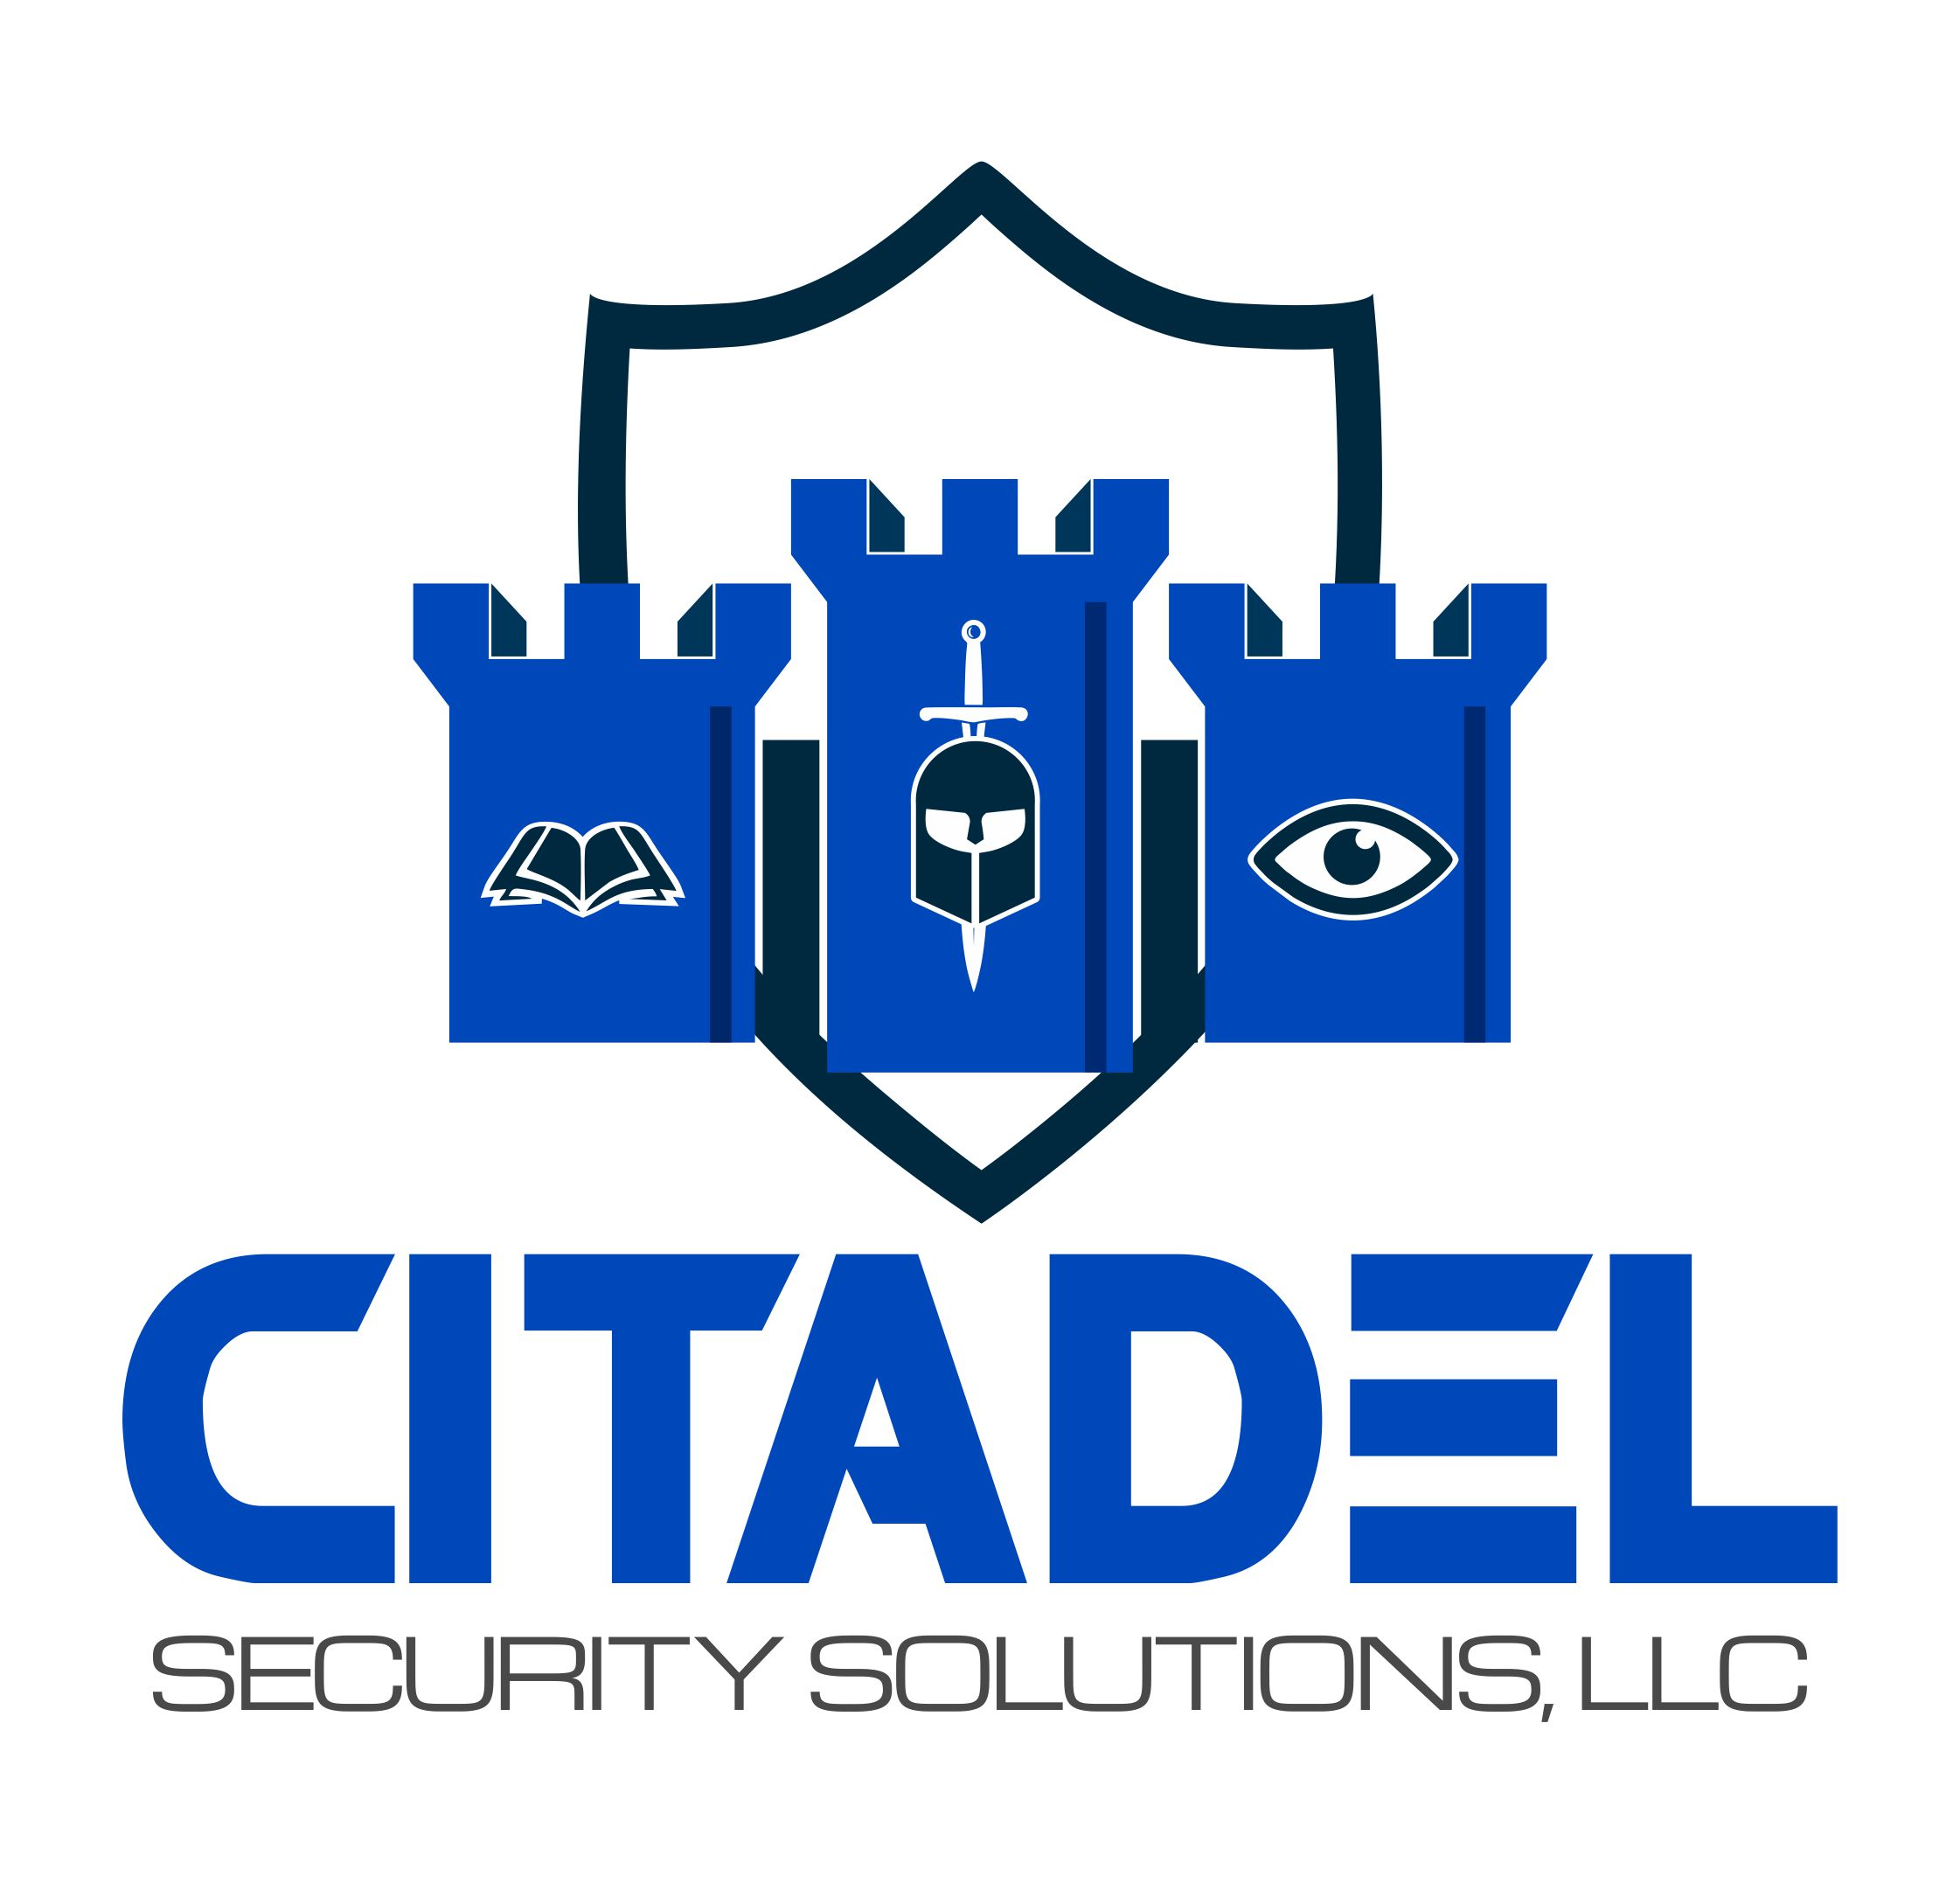 Citadel Security Solutions LLC